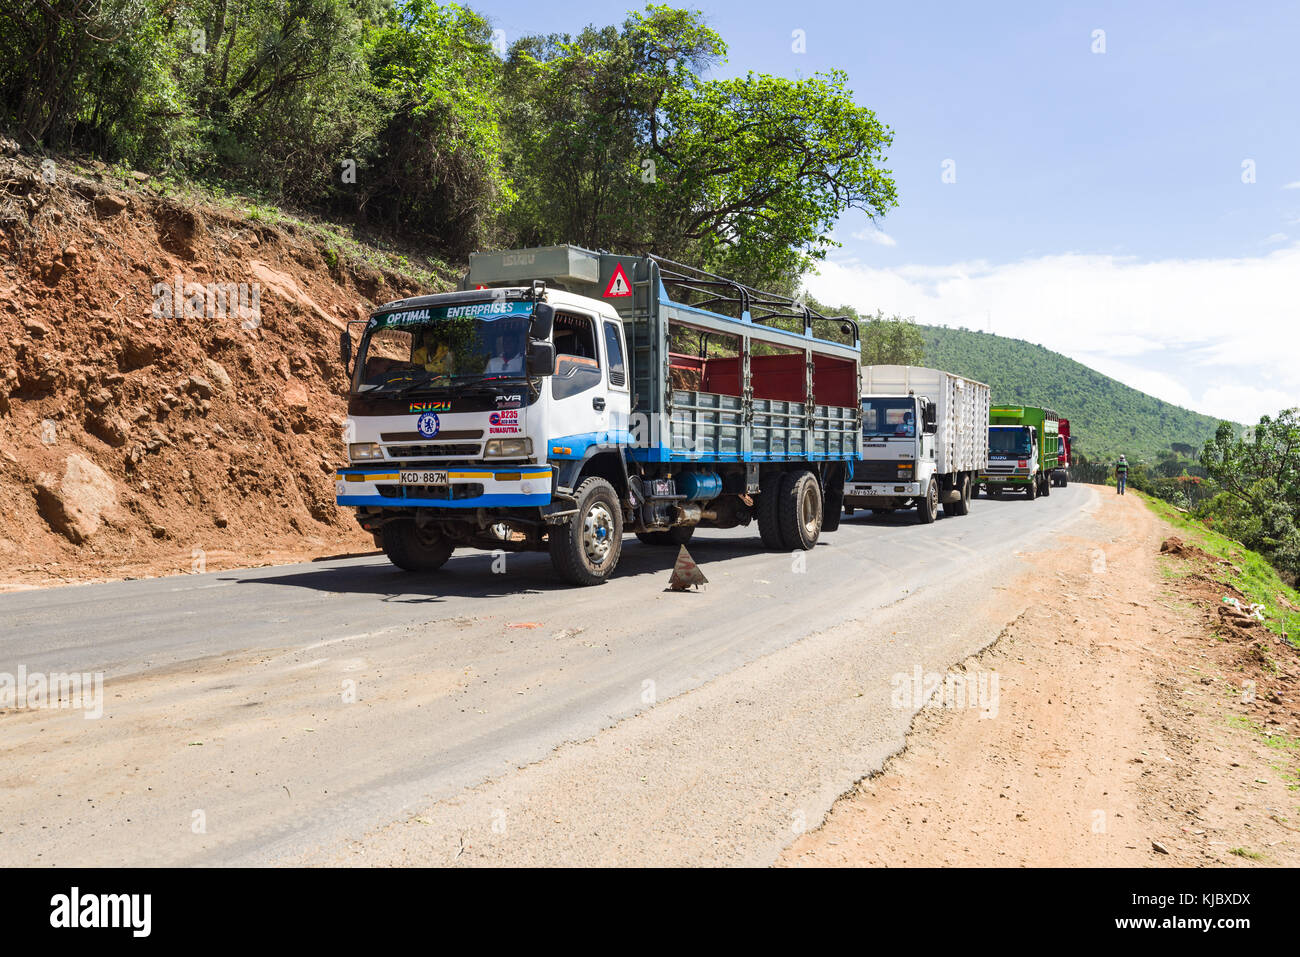 A line of trucks stopped on the road due to an accident further ahead, Rift Valley road, Kenya, East Africa Stock Photo